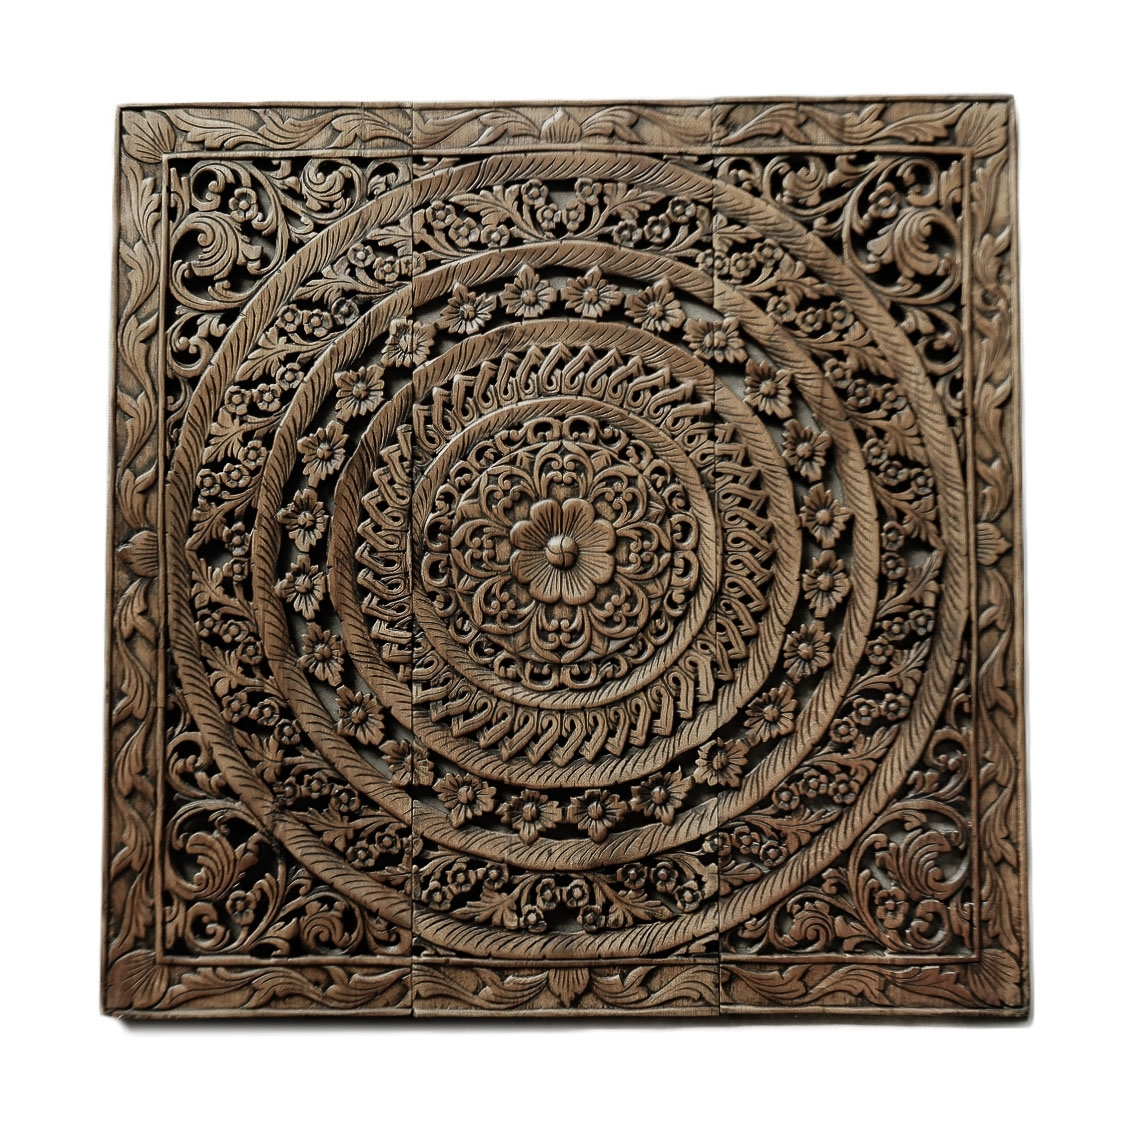 Moroccan Wood Wall Art – Elitflat With Regard To Most Current Moroccan Wall Art (View 8 of 20)